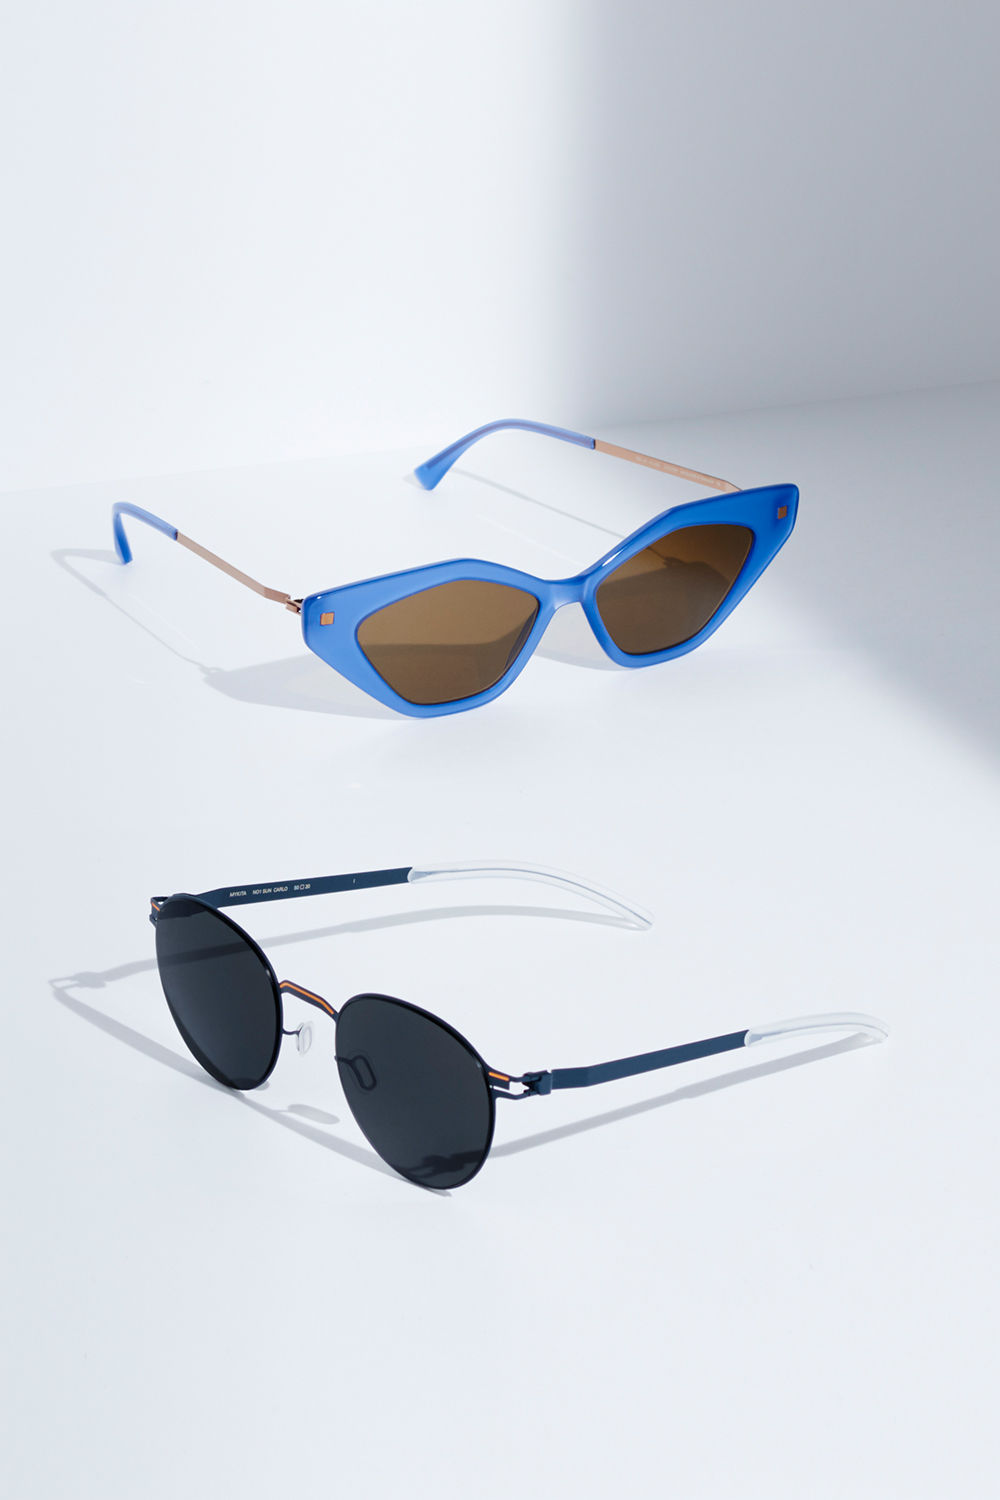 0ea1f0de8 ... MYKITA HANDCRAFTED DESIGNER PRESCRIPTION GLASSES & SUNGLASSES MYKITA  No1 Sun Carlo Indigo Orange Dark Grey Solid MYKITA Lite Acetate Sun Gapi C88  Misty ...